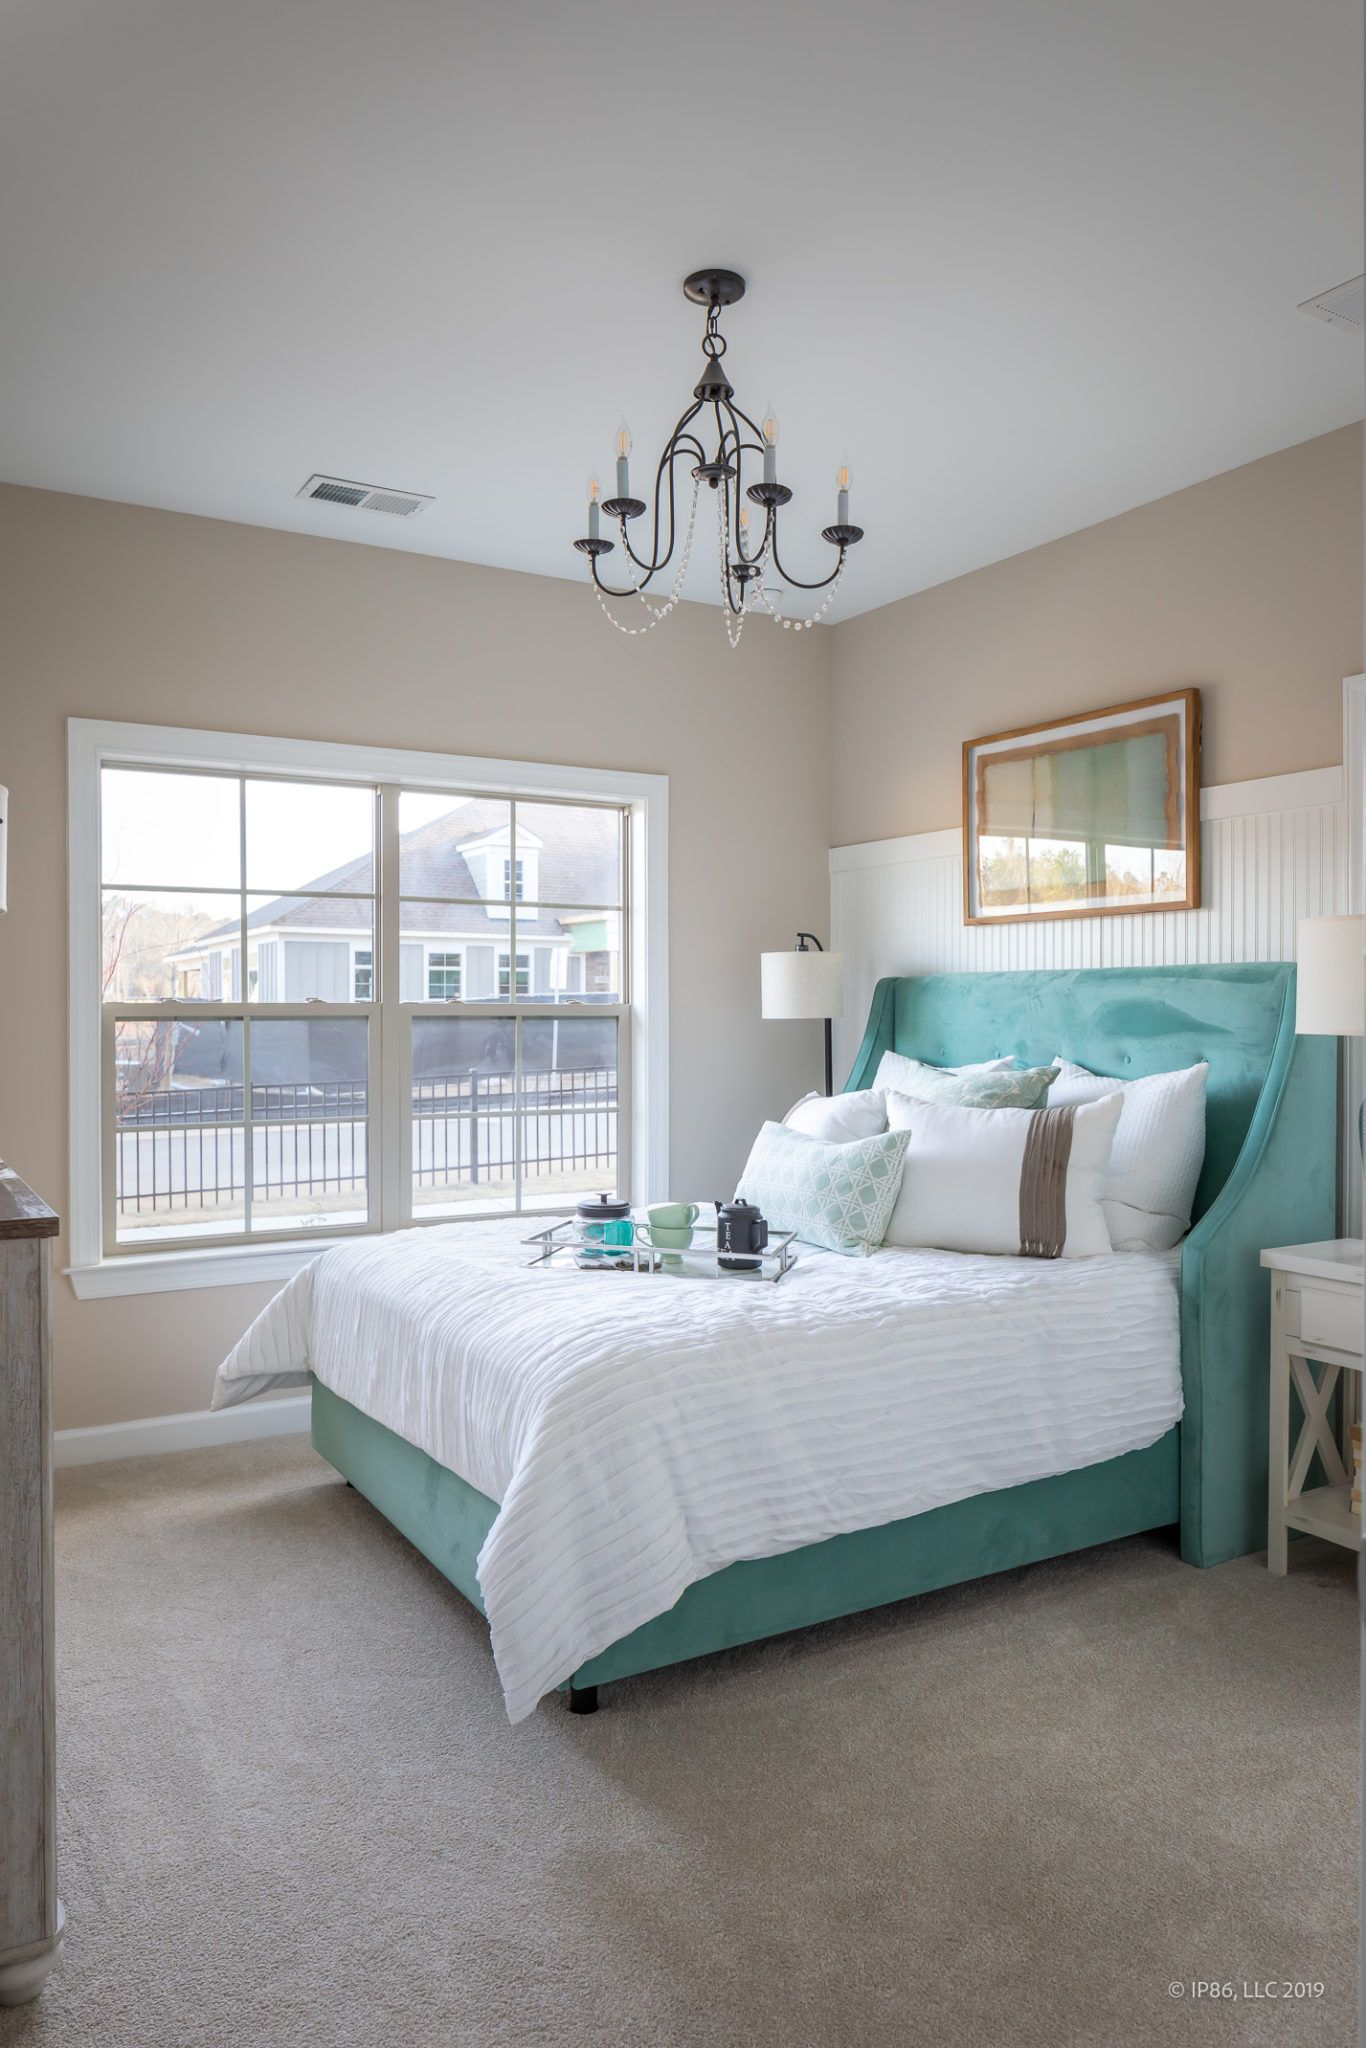 Bedroom featured in the Promenade III - Raleigh Corporate By Epcon Communities